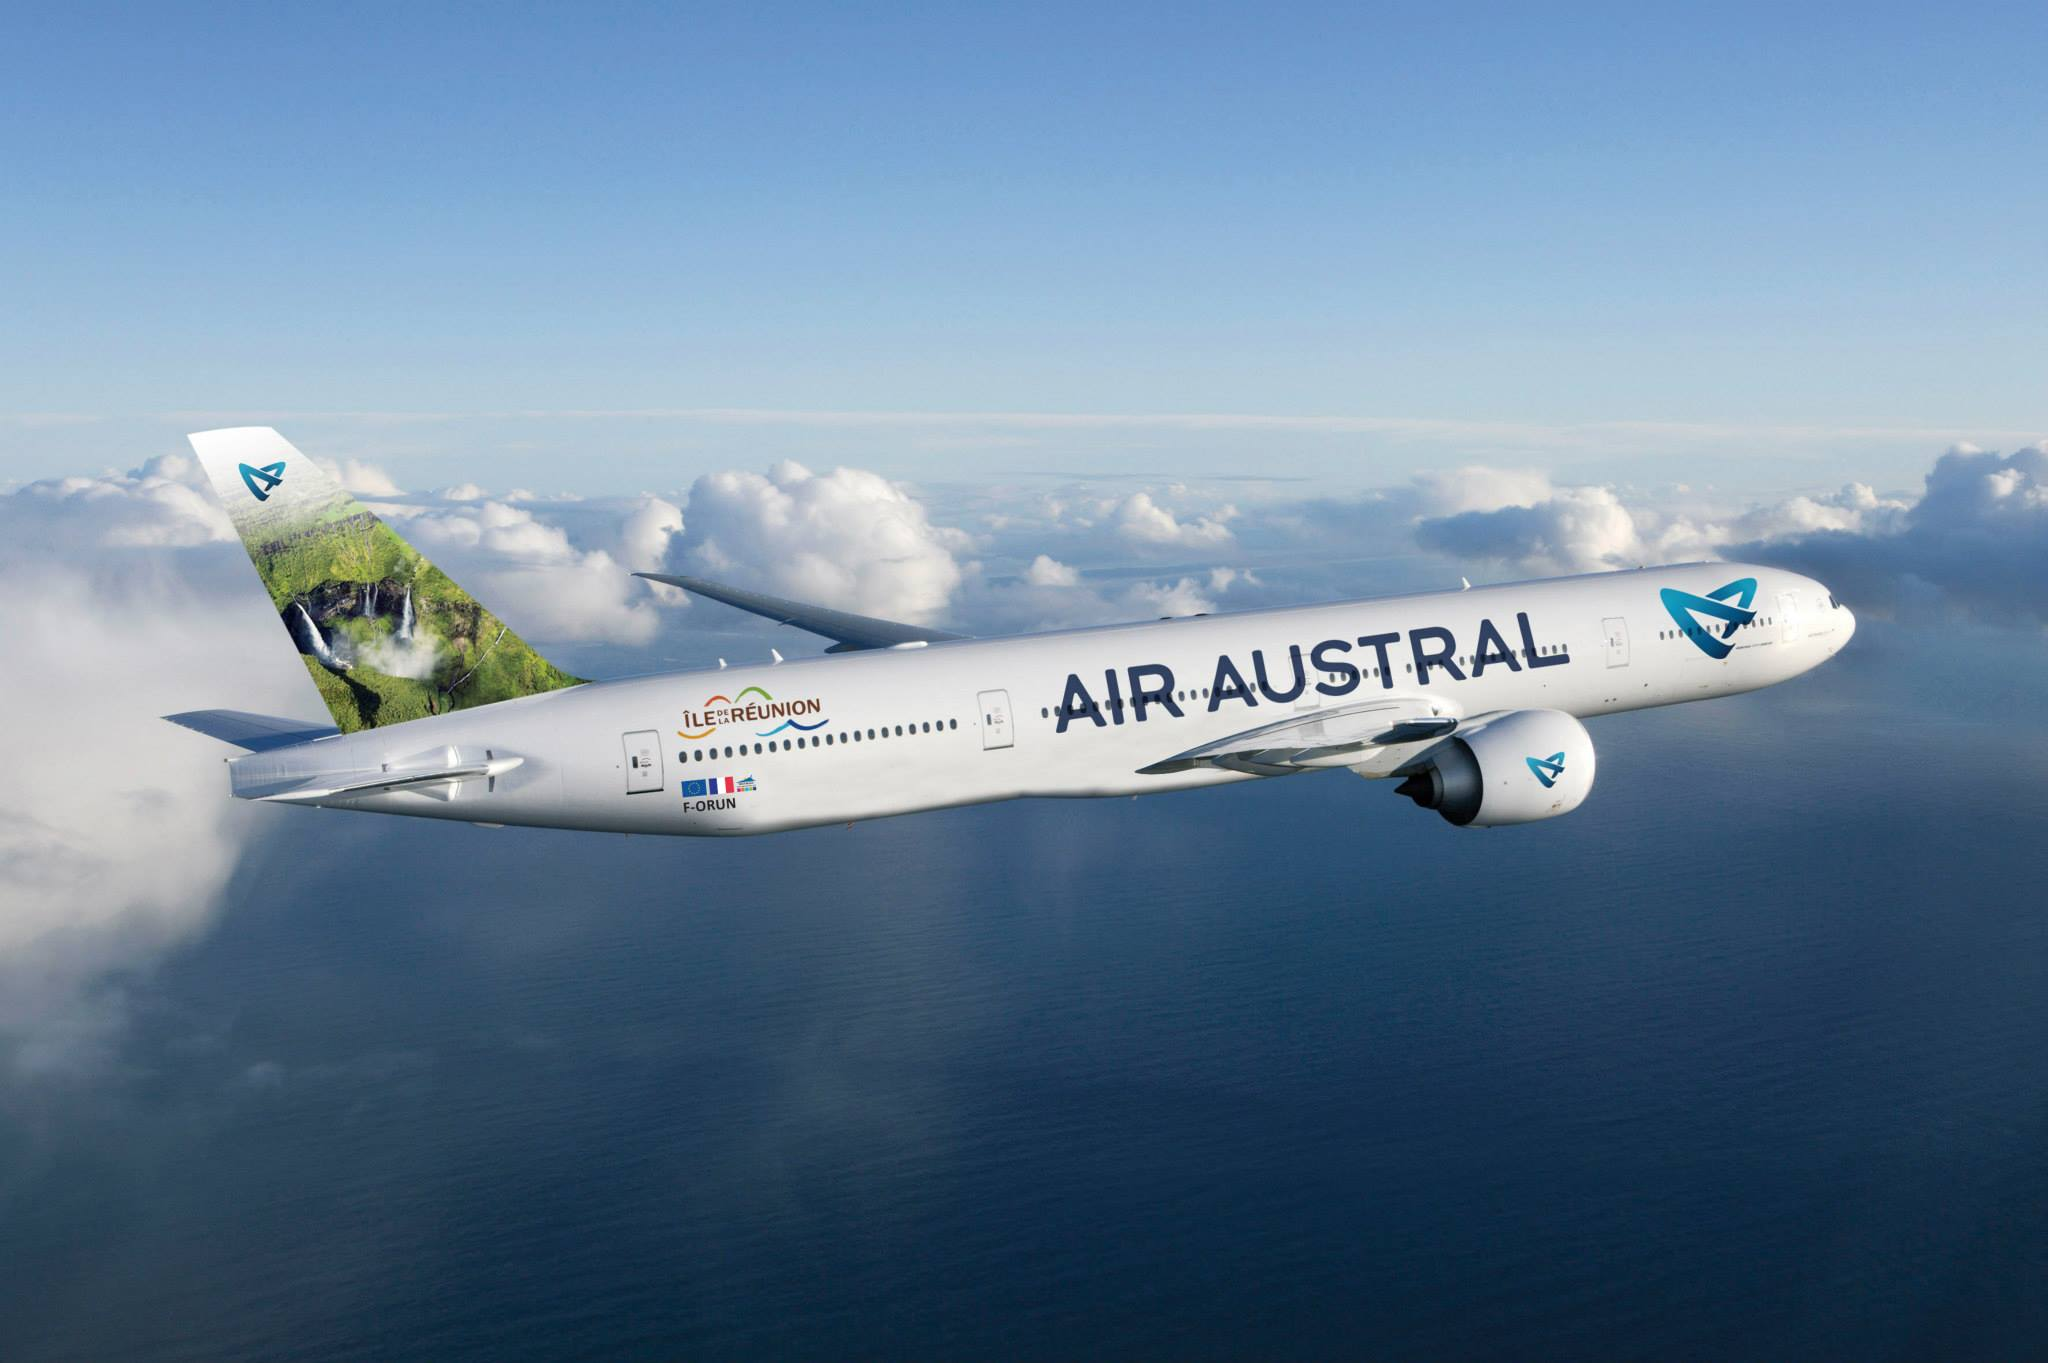 Air austral reprise des vols directs marseille la for Interieur boeing 777 300er air france